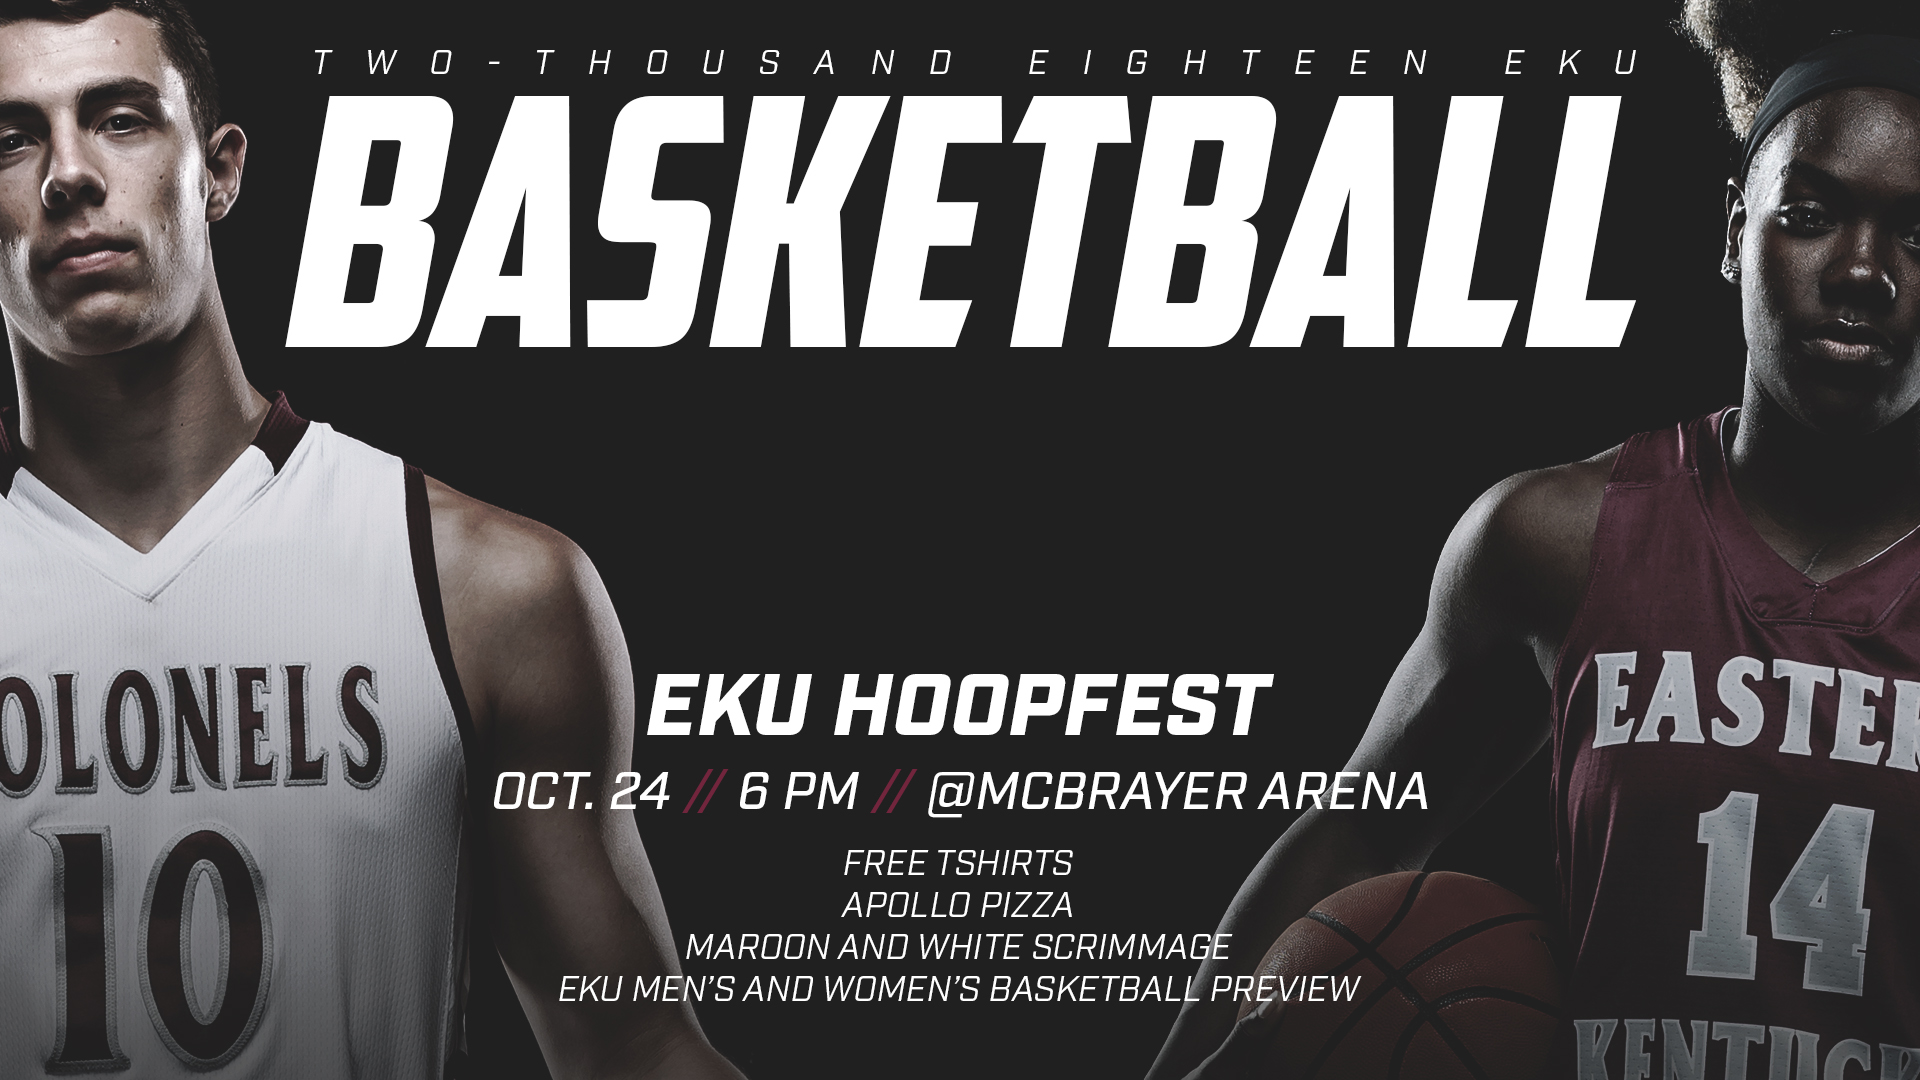 halloween hoopfest to be held wednesday, october 24 - eastern